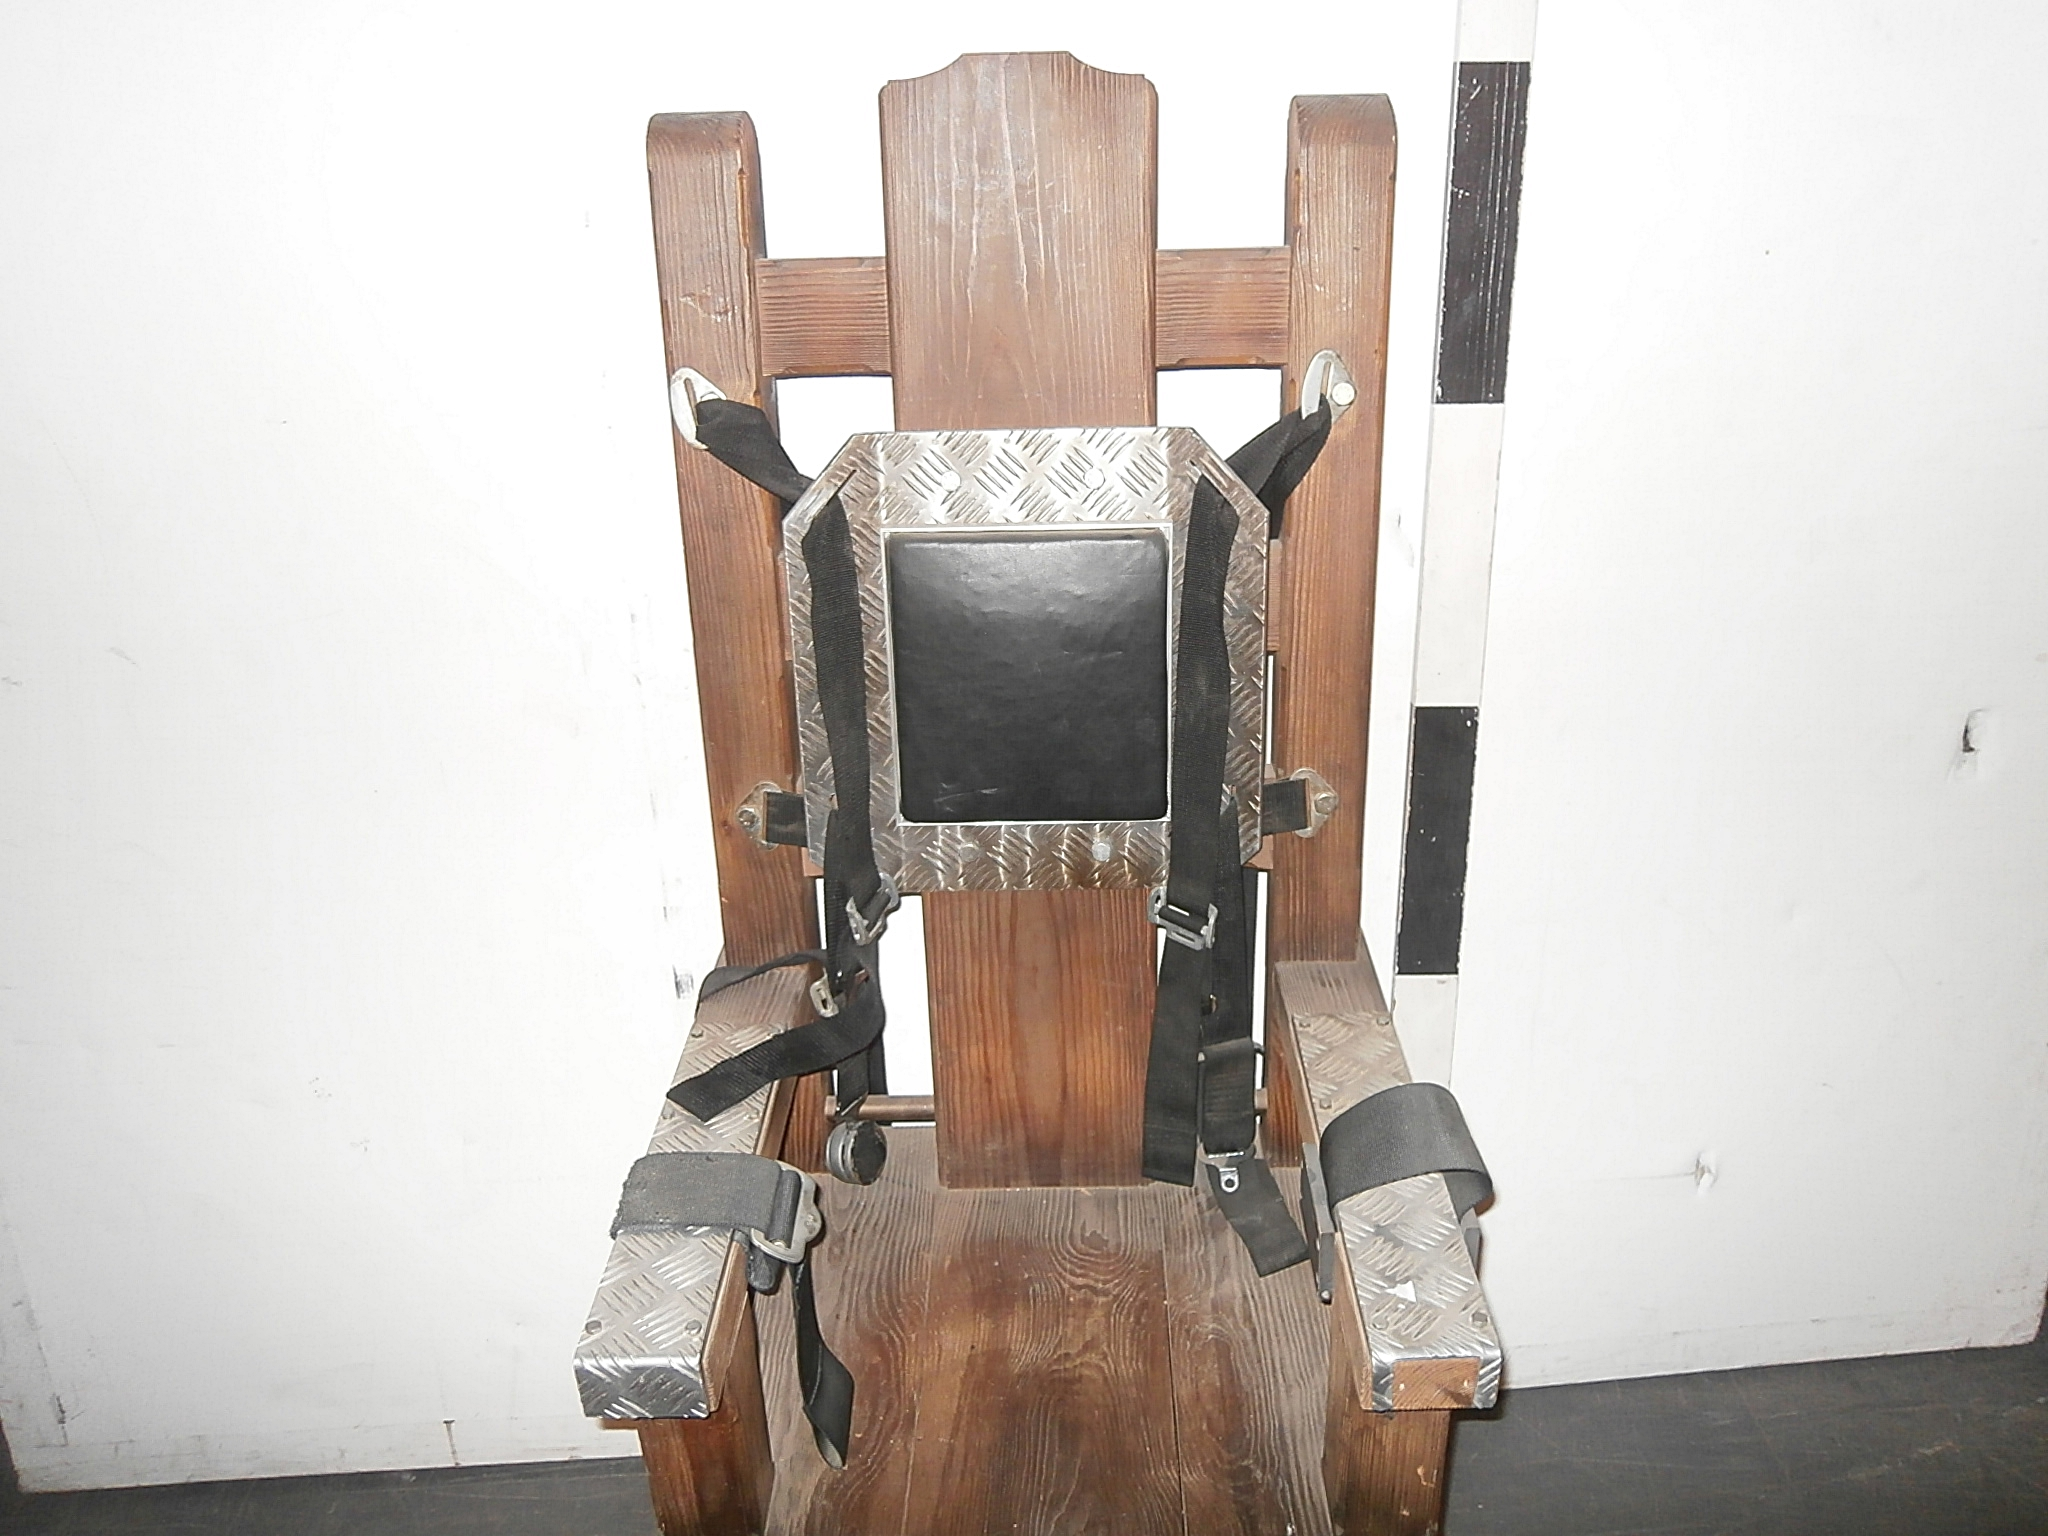 0085044 Electric Torture Chair Timber With Straps ( H 155cm x 62 x 60 ) & 0085044 Electric Torture Chair Timber With Straps ( H 155cm x 62 x ...